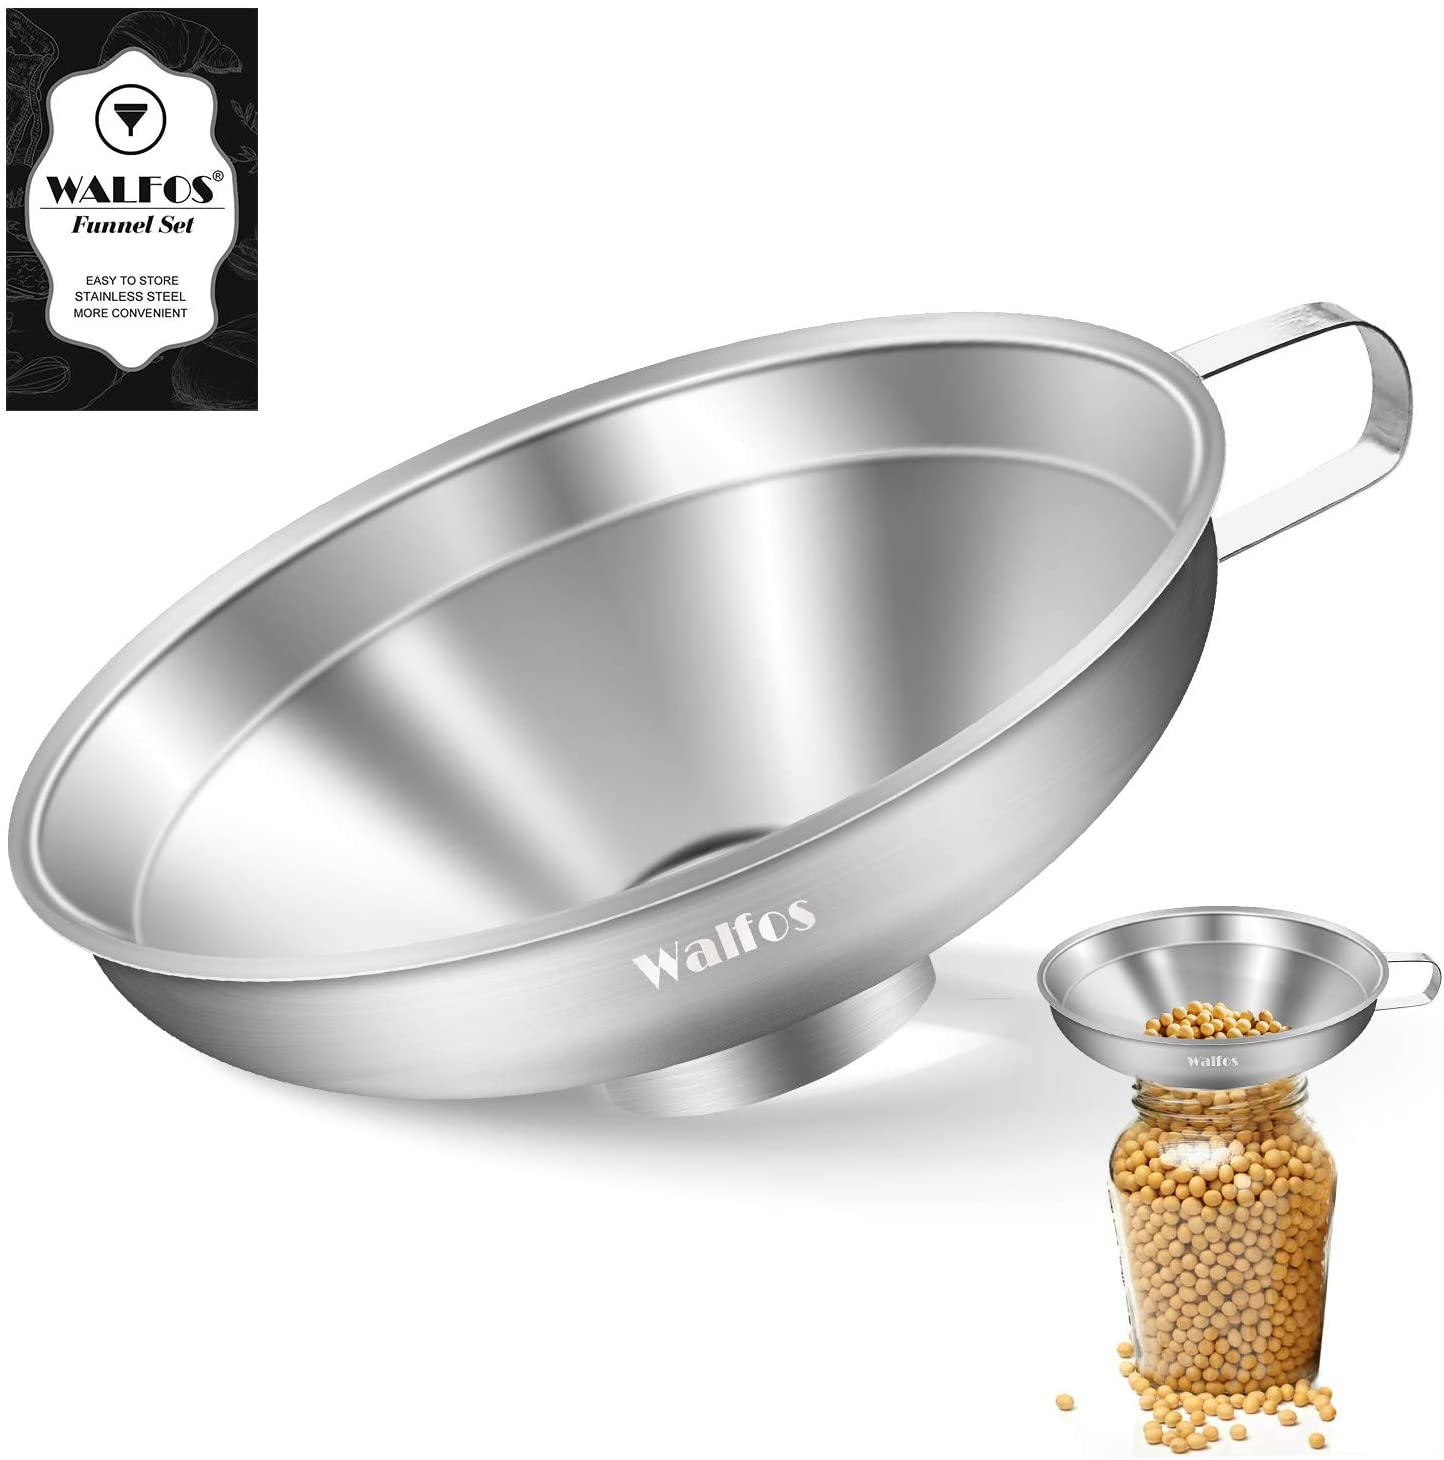 WALFOS High Quality Stainless Steel Funnel Wide Mouth Funnel For Oil Wine Canning Cooking Kitchen Garden Accessiores Tool